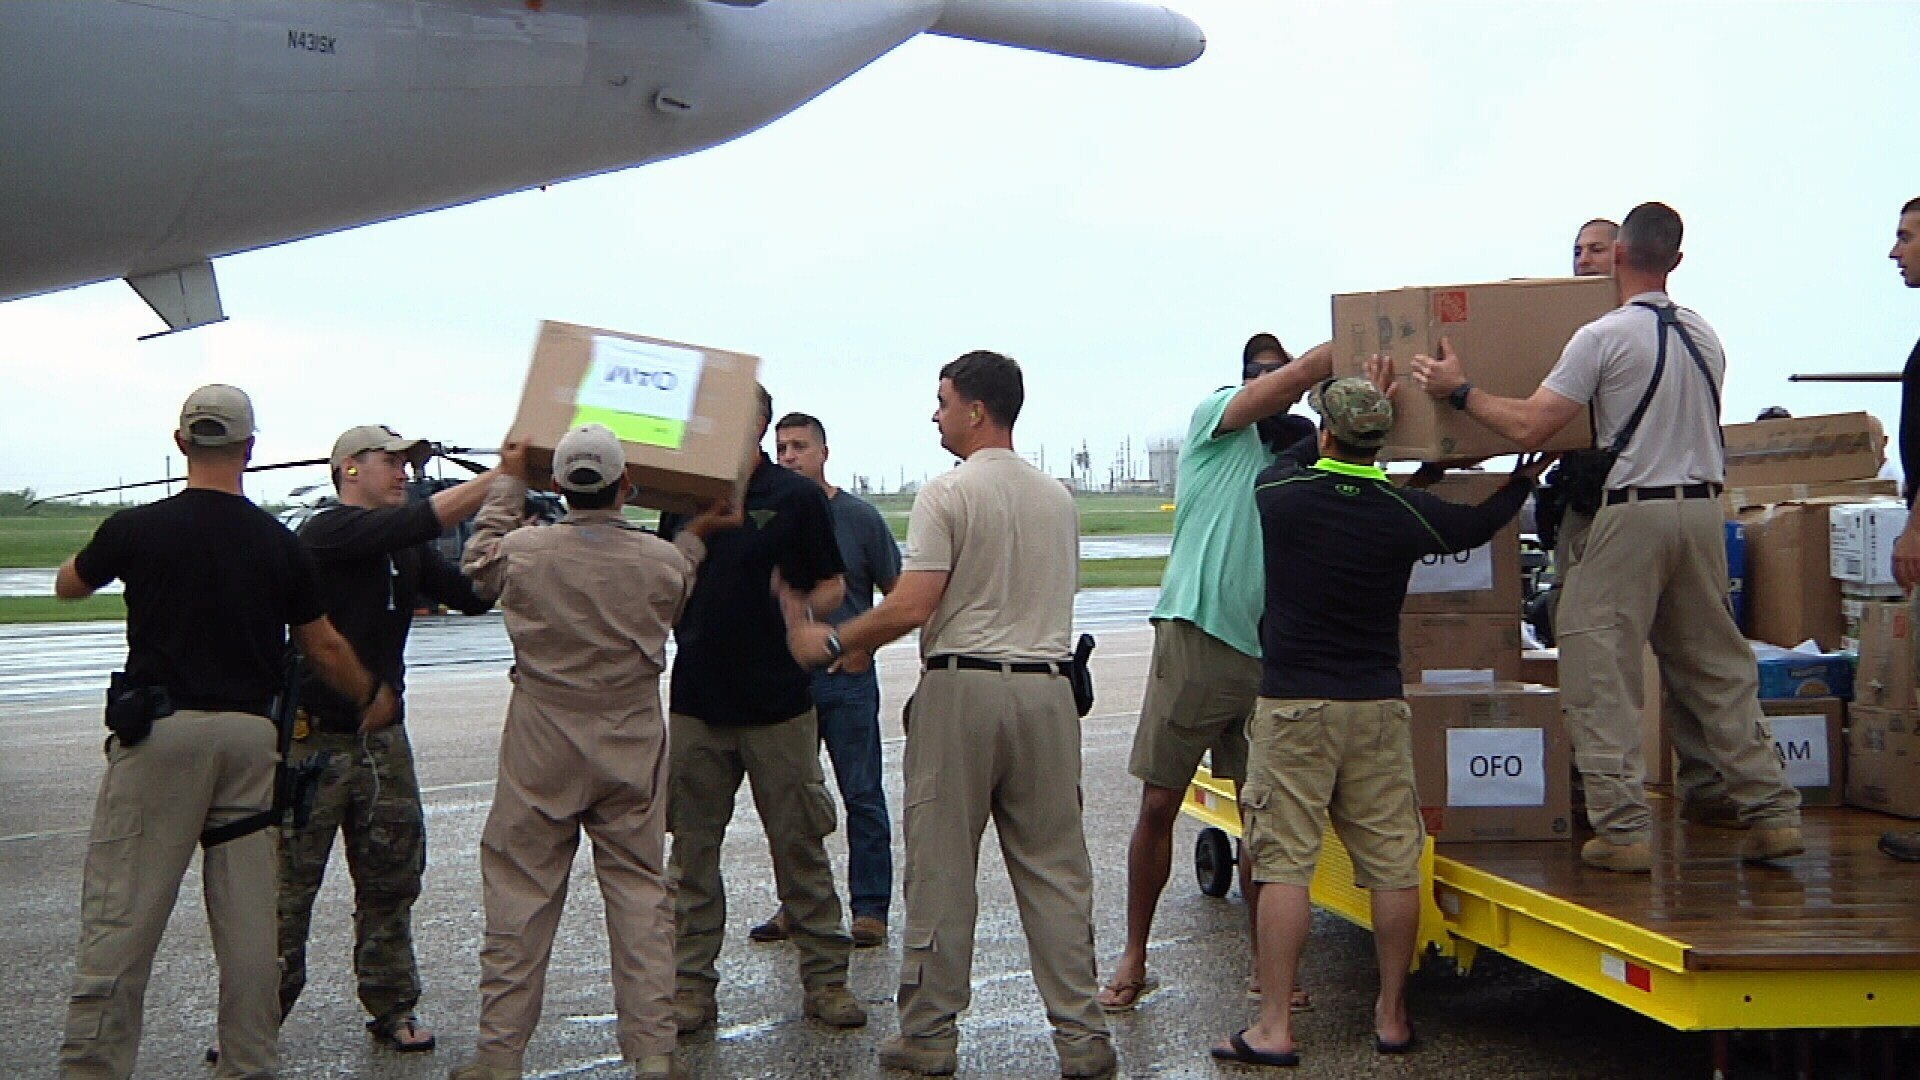 Customs and Border Protection agents unloaded the planes supplies, before the crew transported many of those agents back to Texas.